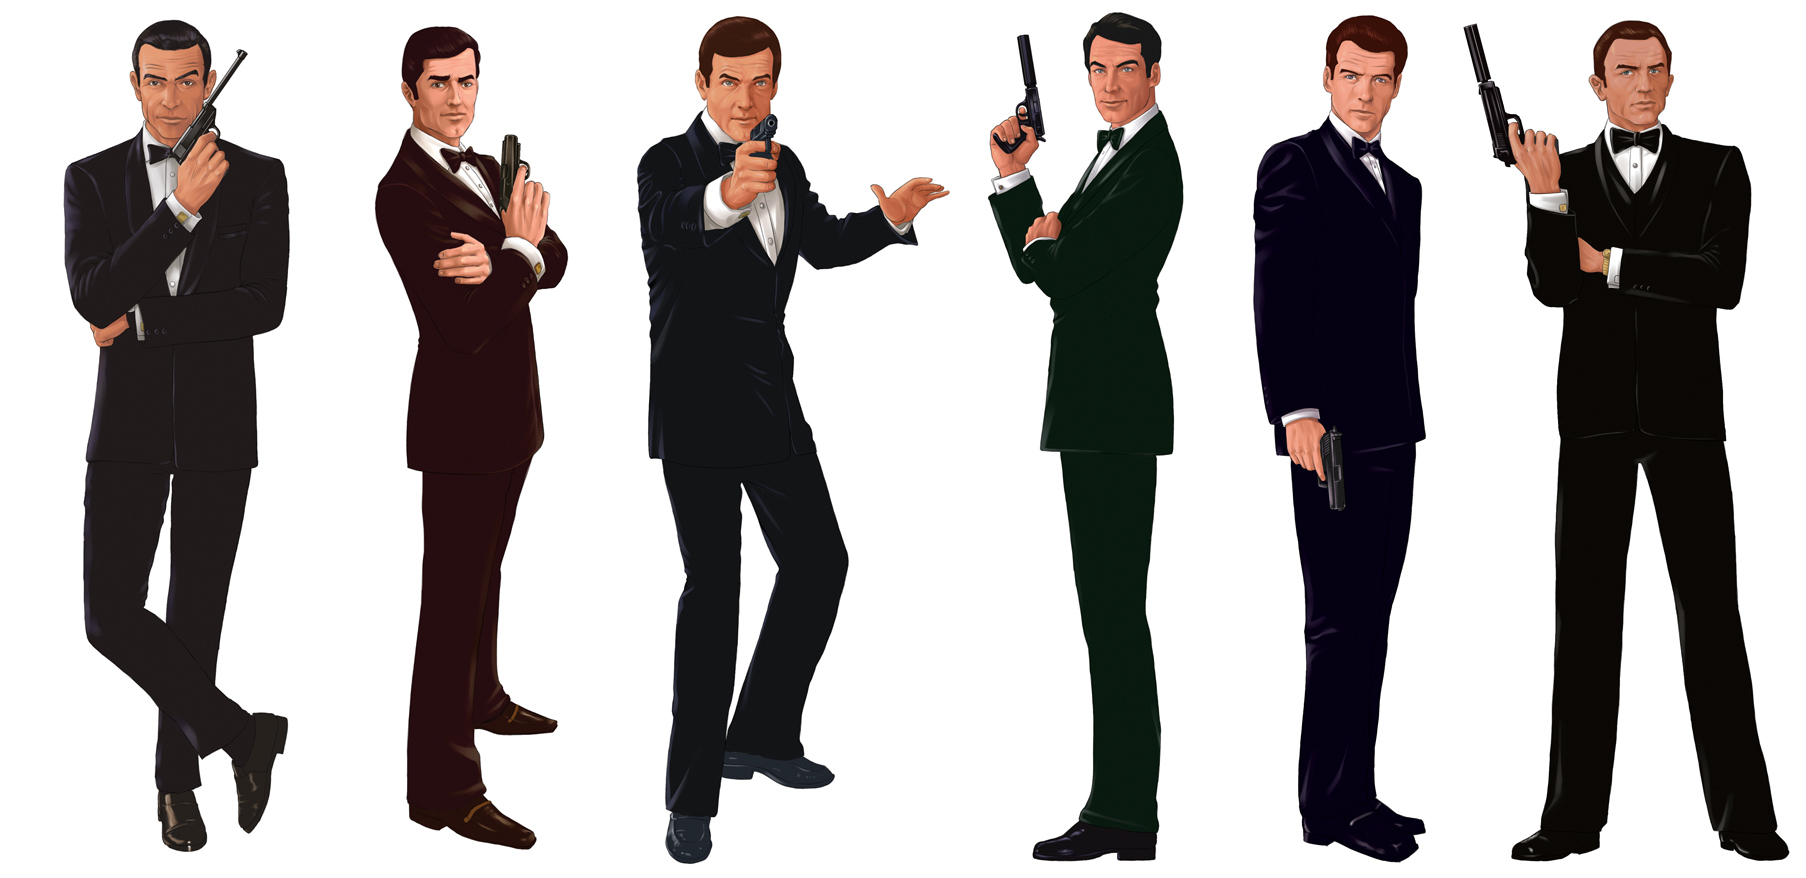 james bond and culture The james bond character and related media have triggered a number of criticisms and reactions across the political spectrum, and are still highly debated in popular culture studies [221] [222] some observers accuse the bond novels and films of misogyny and sexism  [223.